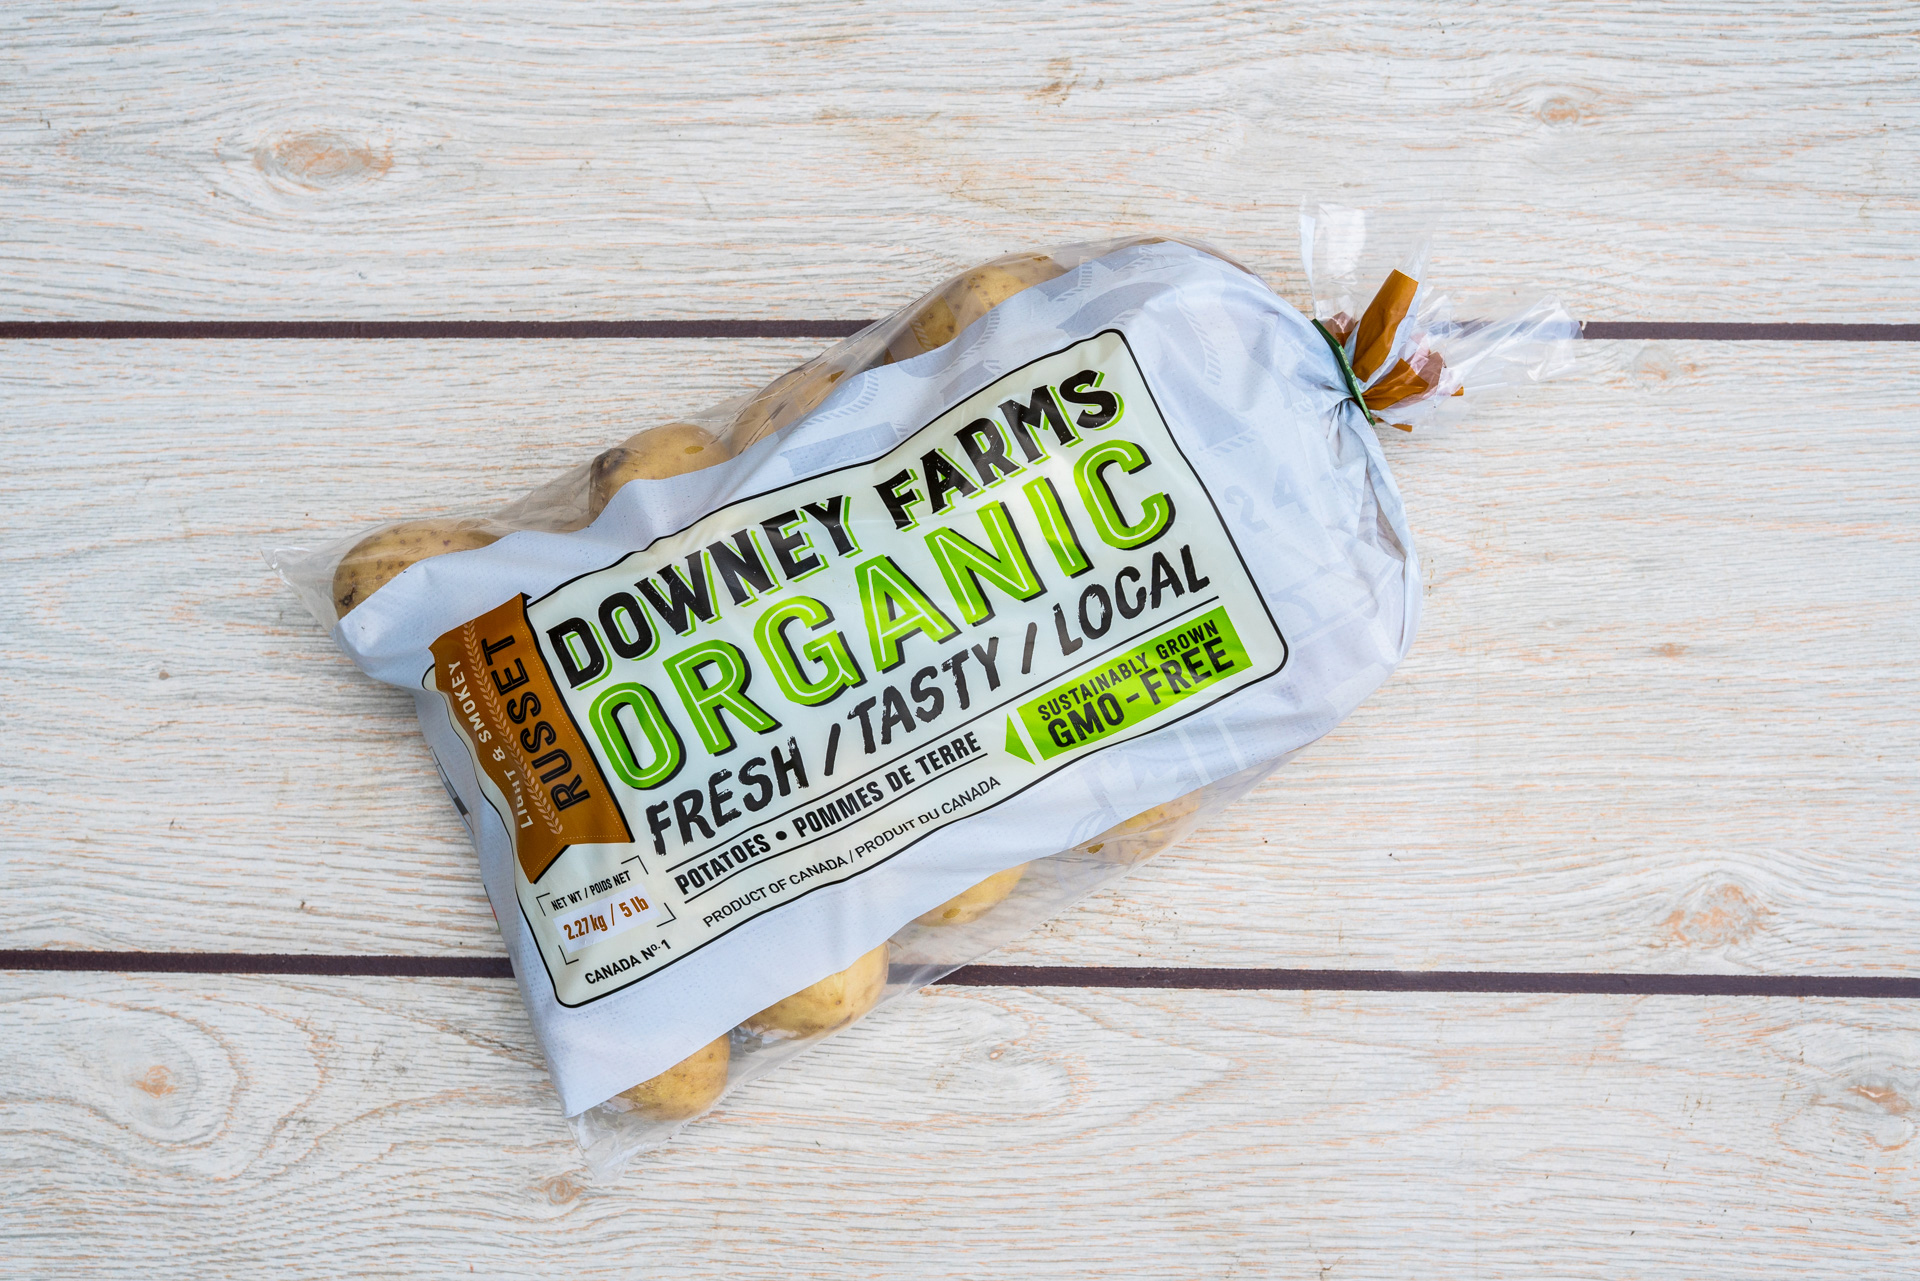 Downey Farms Organic Russet Potatoes bag design. Fresh, tasty, locally made in Ontario.